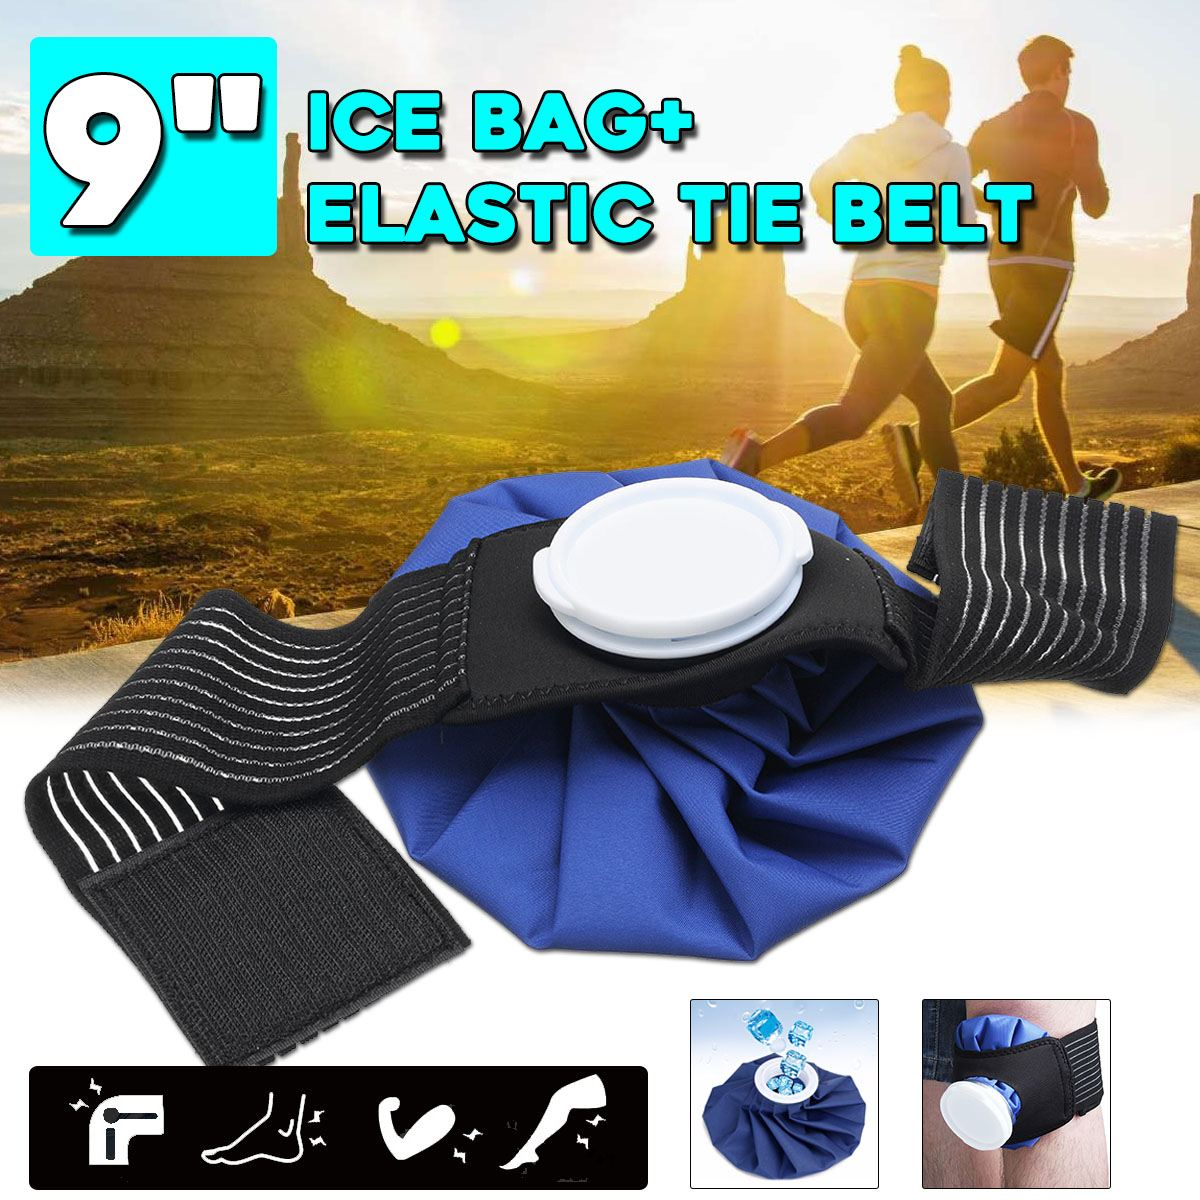 Osmond 9'' Ice Bag Pack+Protector Elastic Tie Belt Set Reusable Knee Head Leg Injury Pain Relief Ice Bag Health Care First Aid